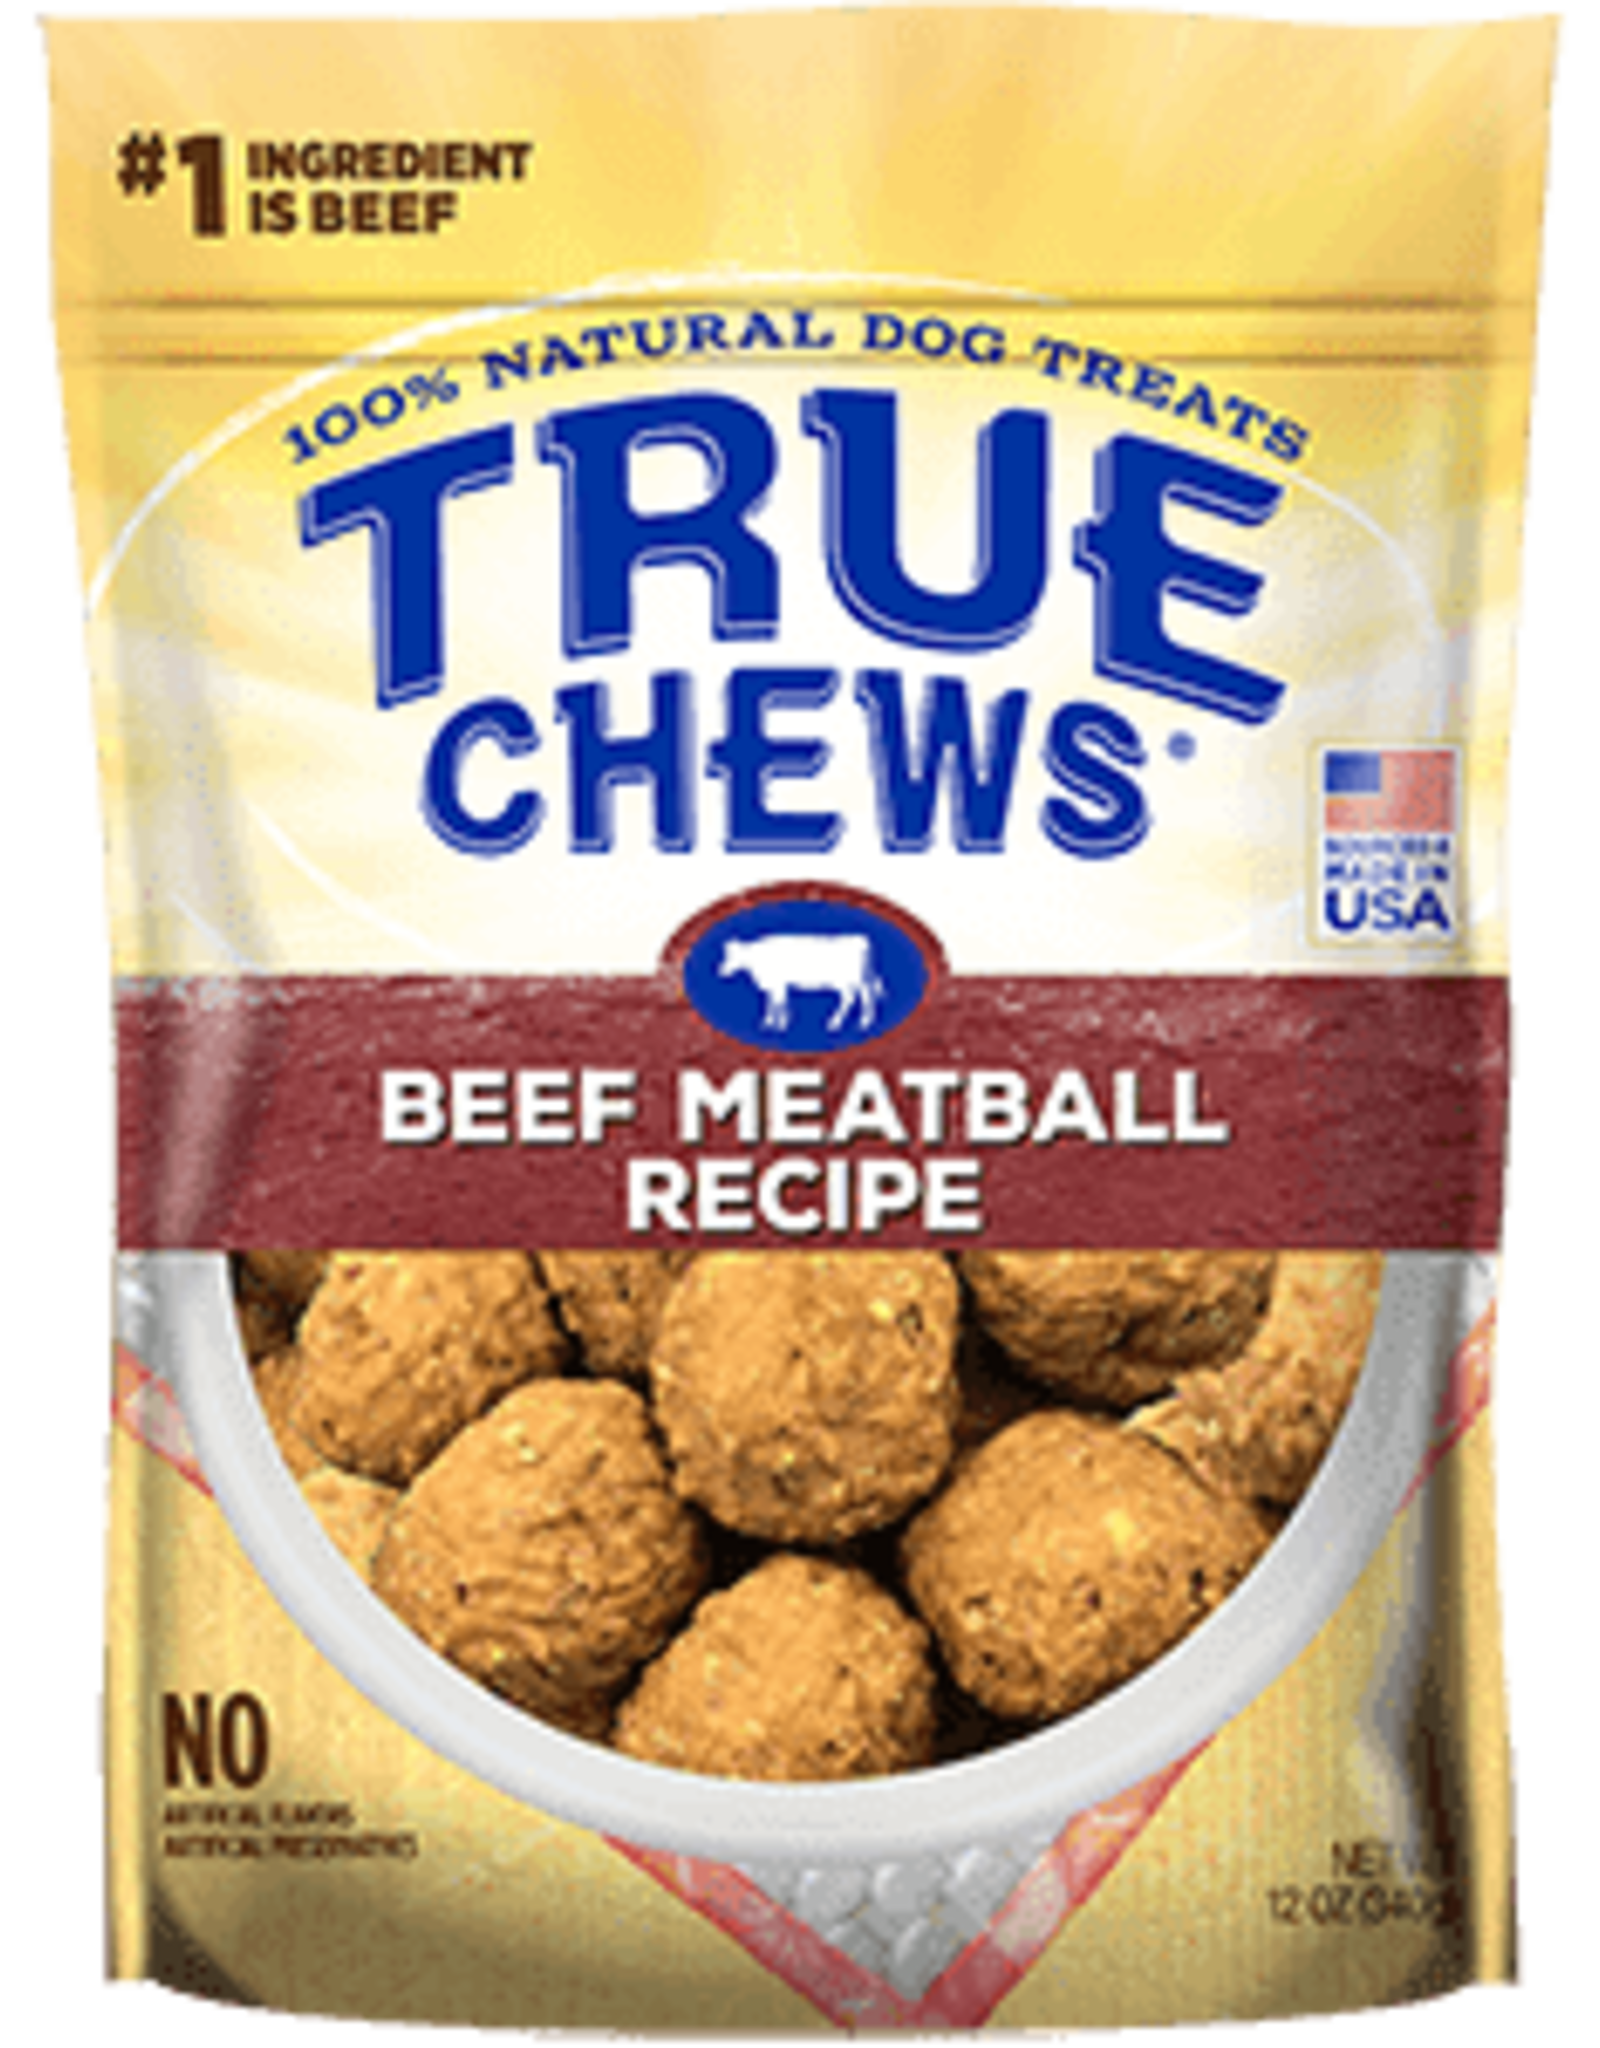 TYSON PET PRODUCTS INC TRUE CHEWS MEATBALL RECIPE BEEF 12OZ